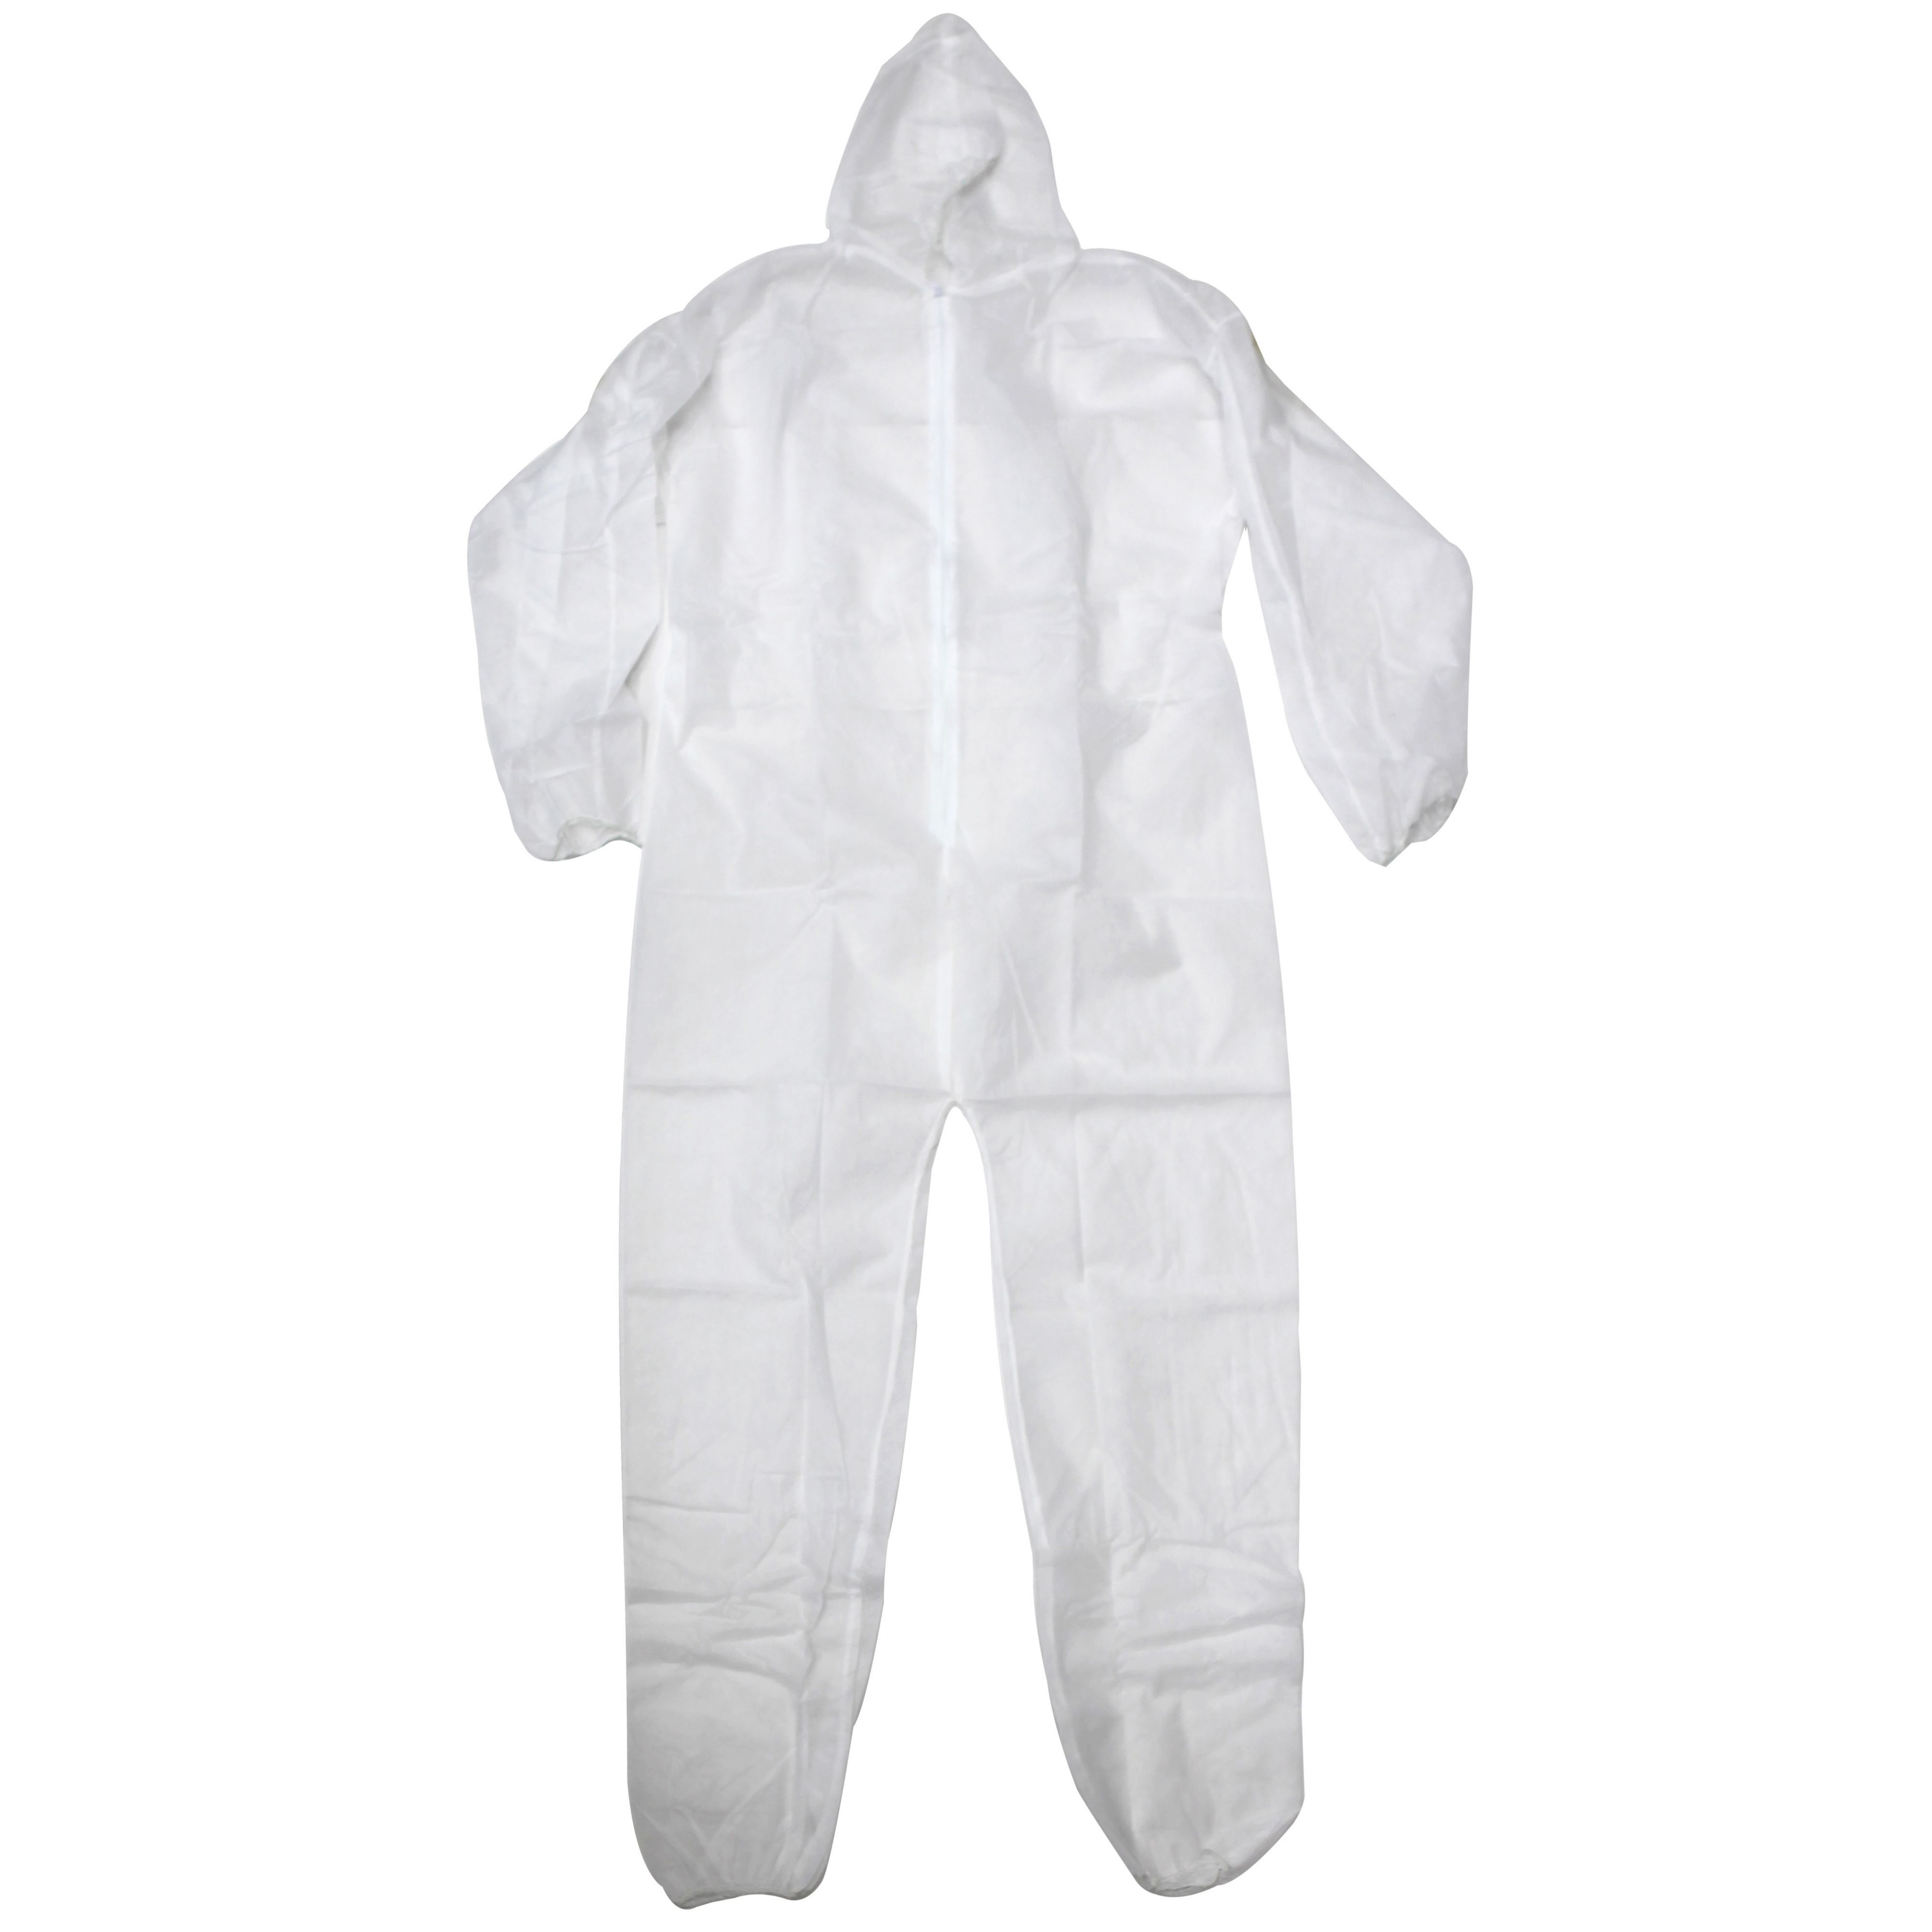 Diall White Disposable Coverall Large Departments Diy